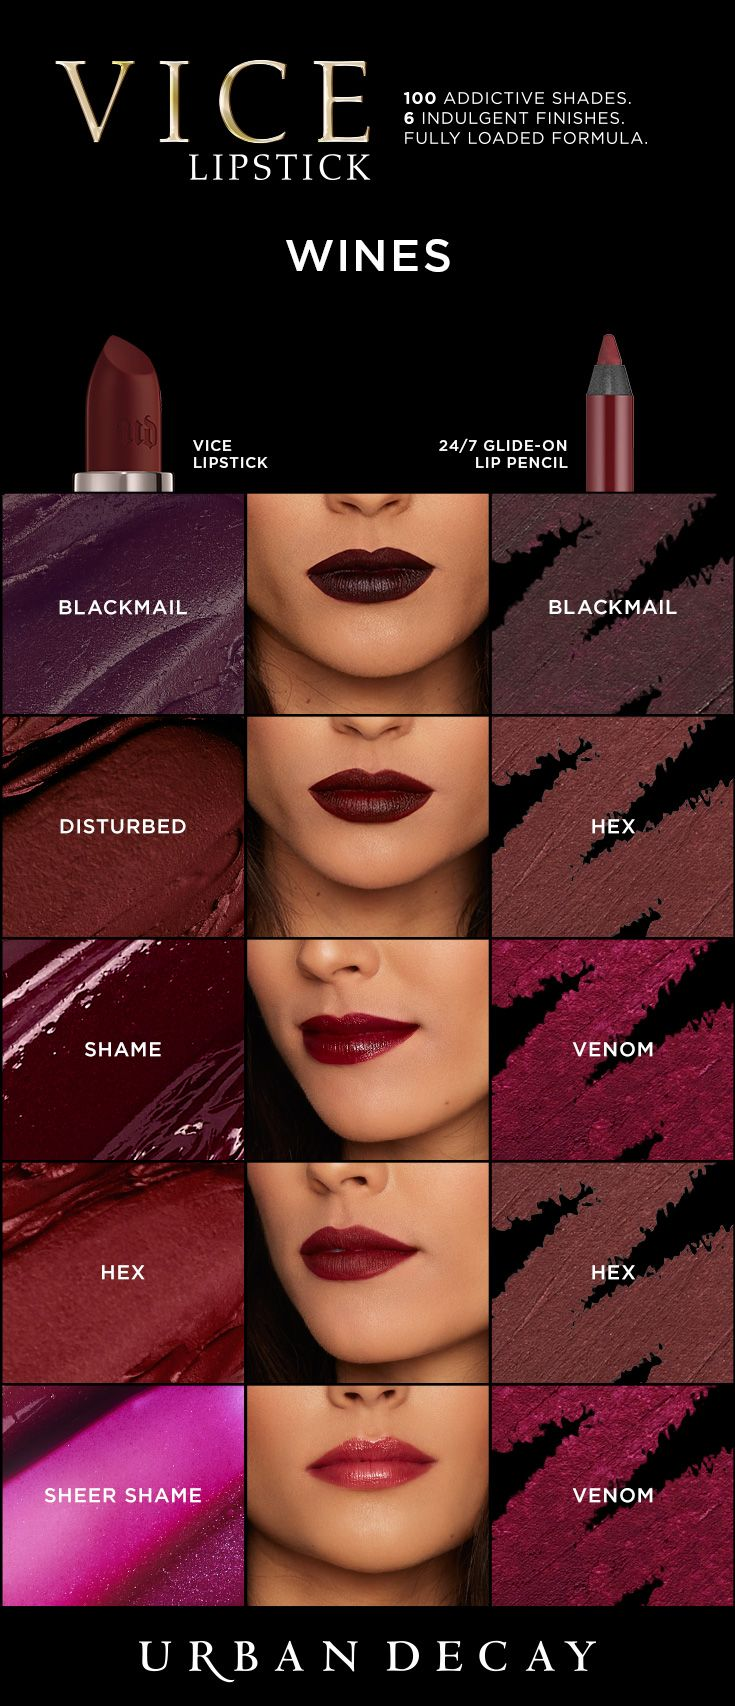 Vamp it up with these bold, wine colored shades of Vice Lipstick! #LipstickIsMyVice